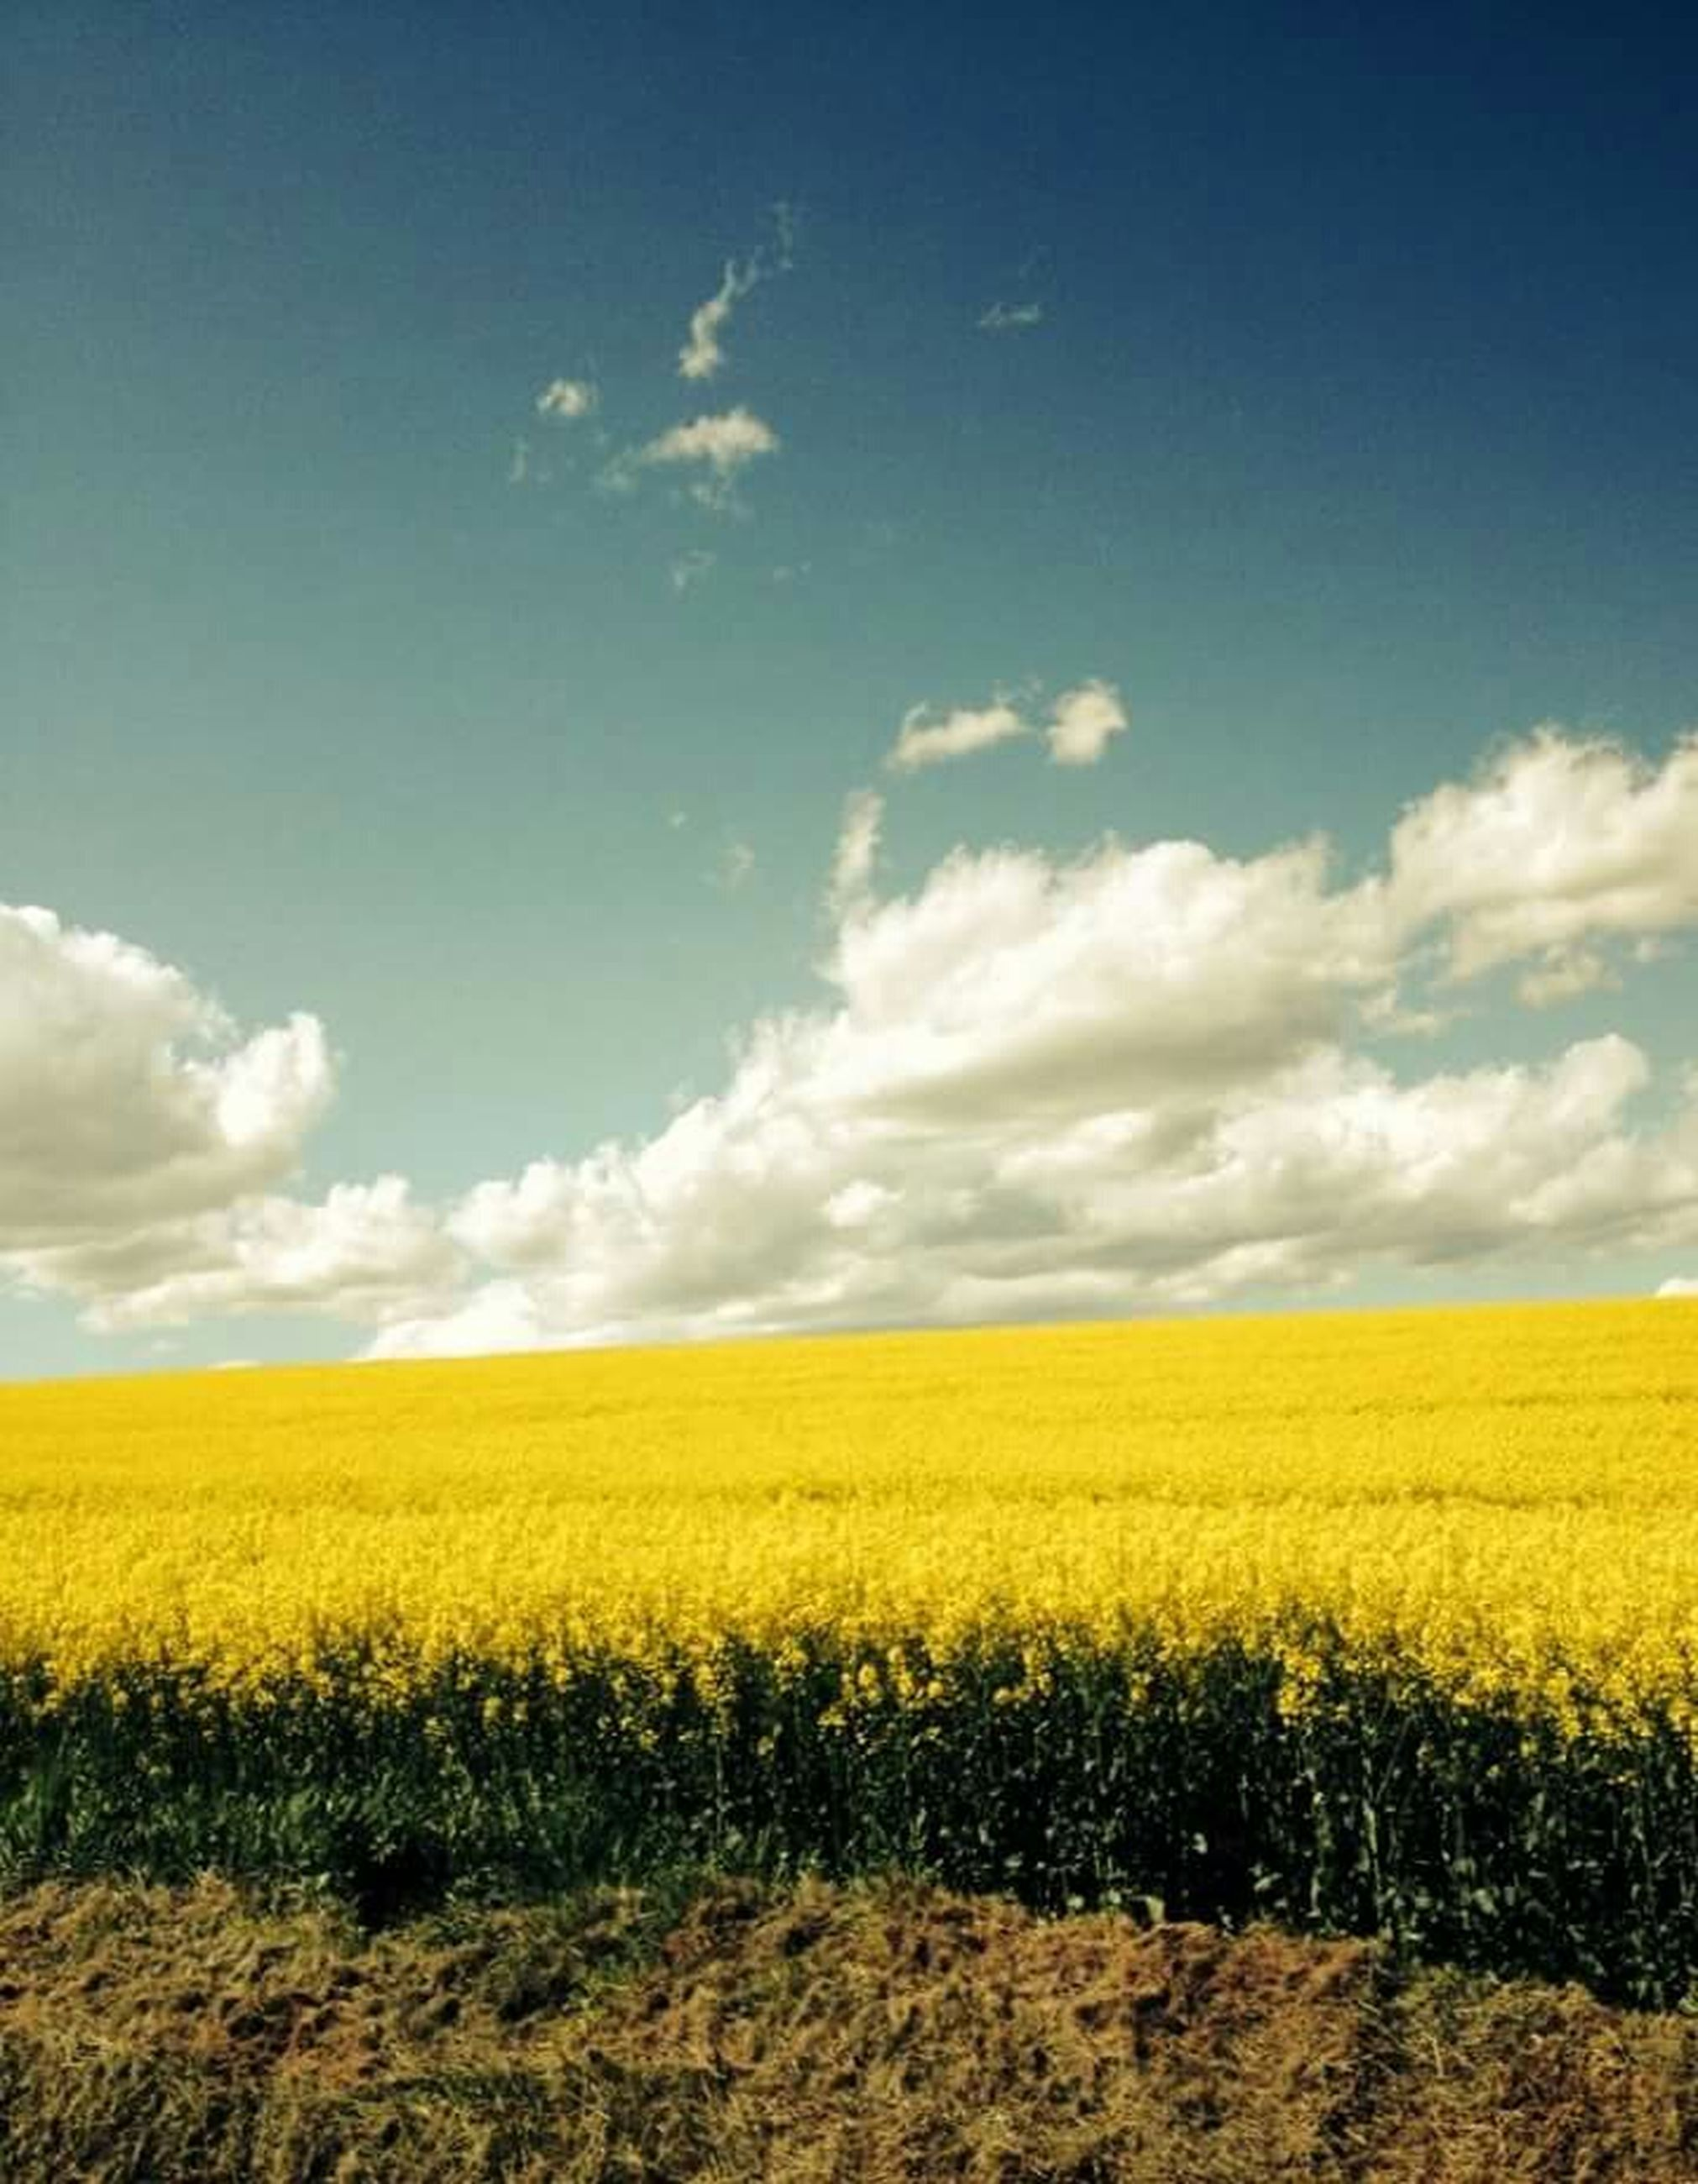 agriculture, yellow, rural scene, field, farm, crop, sky, landscape, tranquil scene, beauty in nature, growth, tranquility, oilseed rape, nature, cultivated land, scenics, cloud - sky, flower, cloud, horizon over land